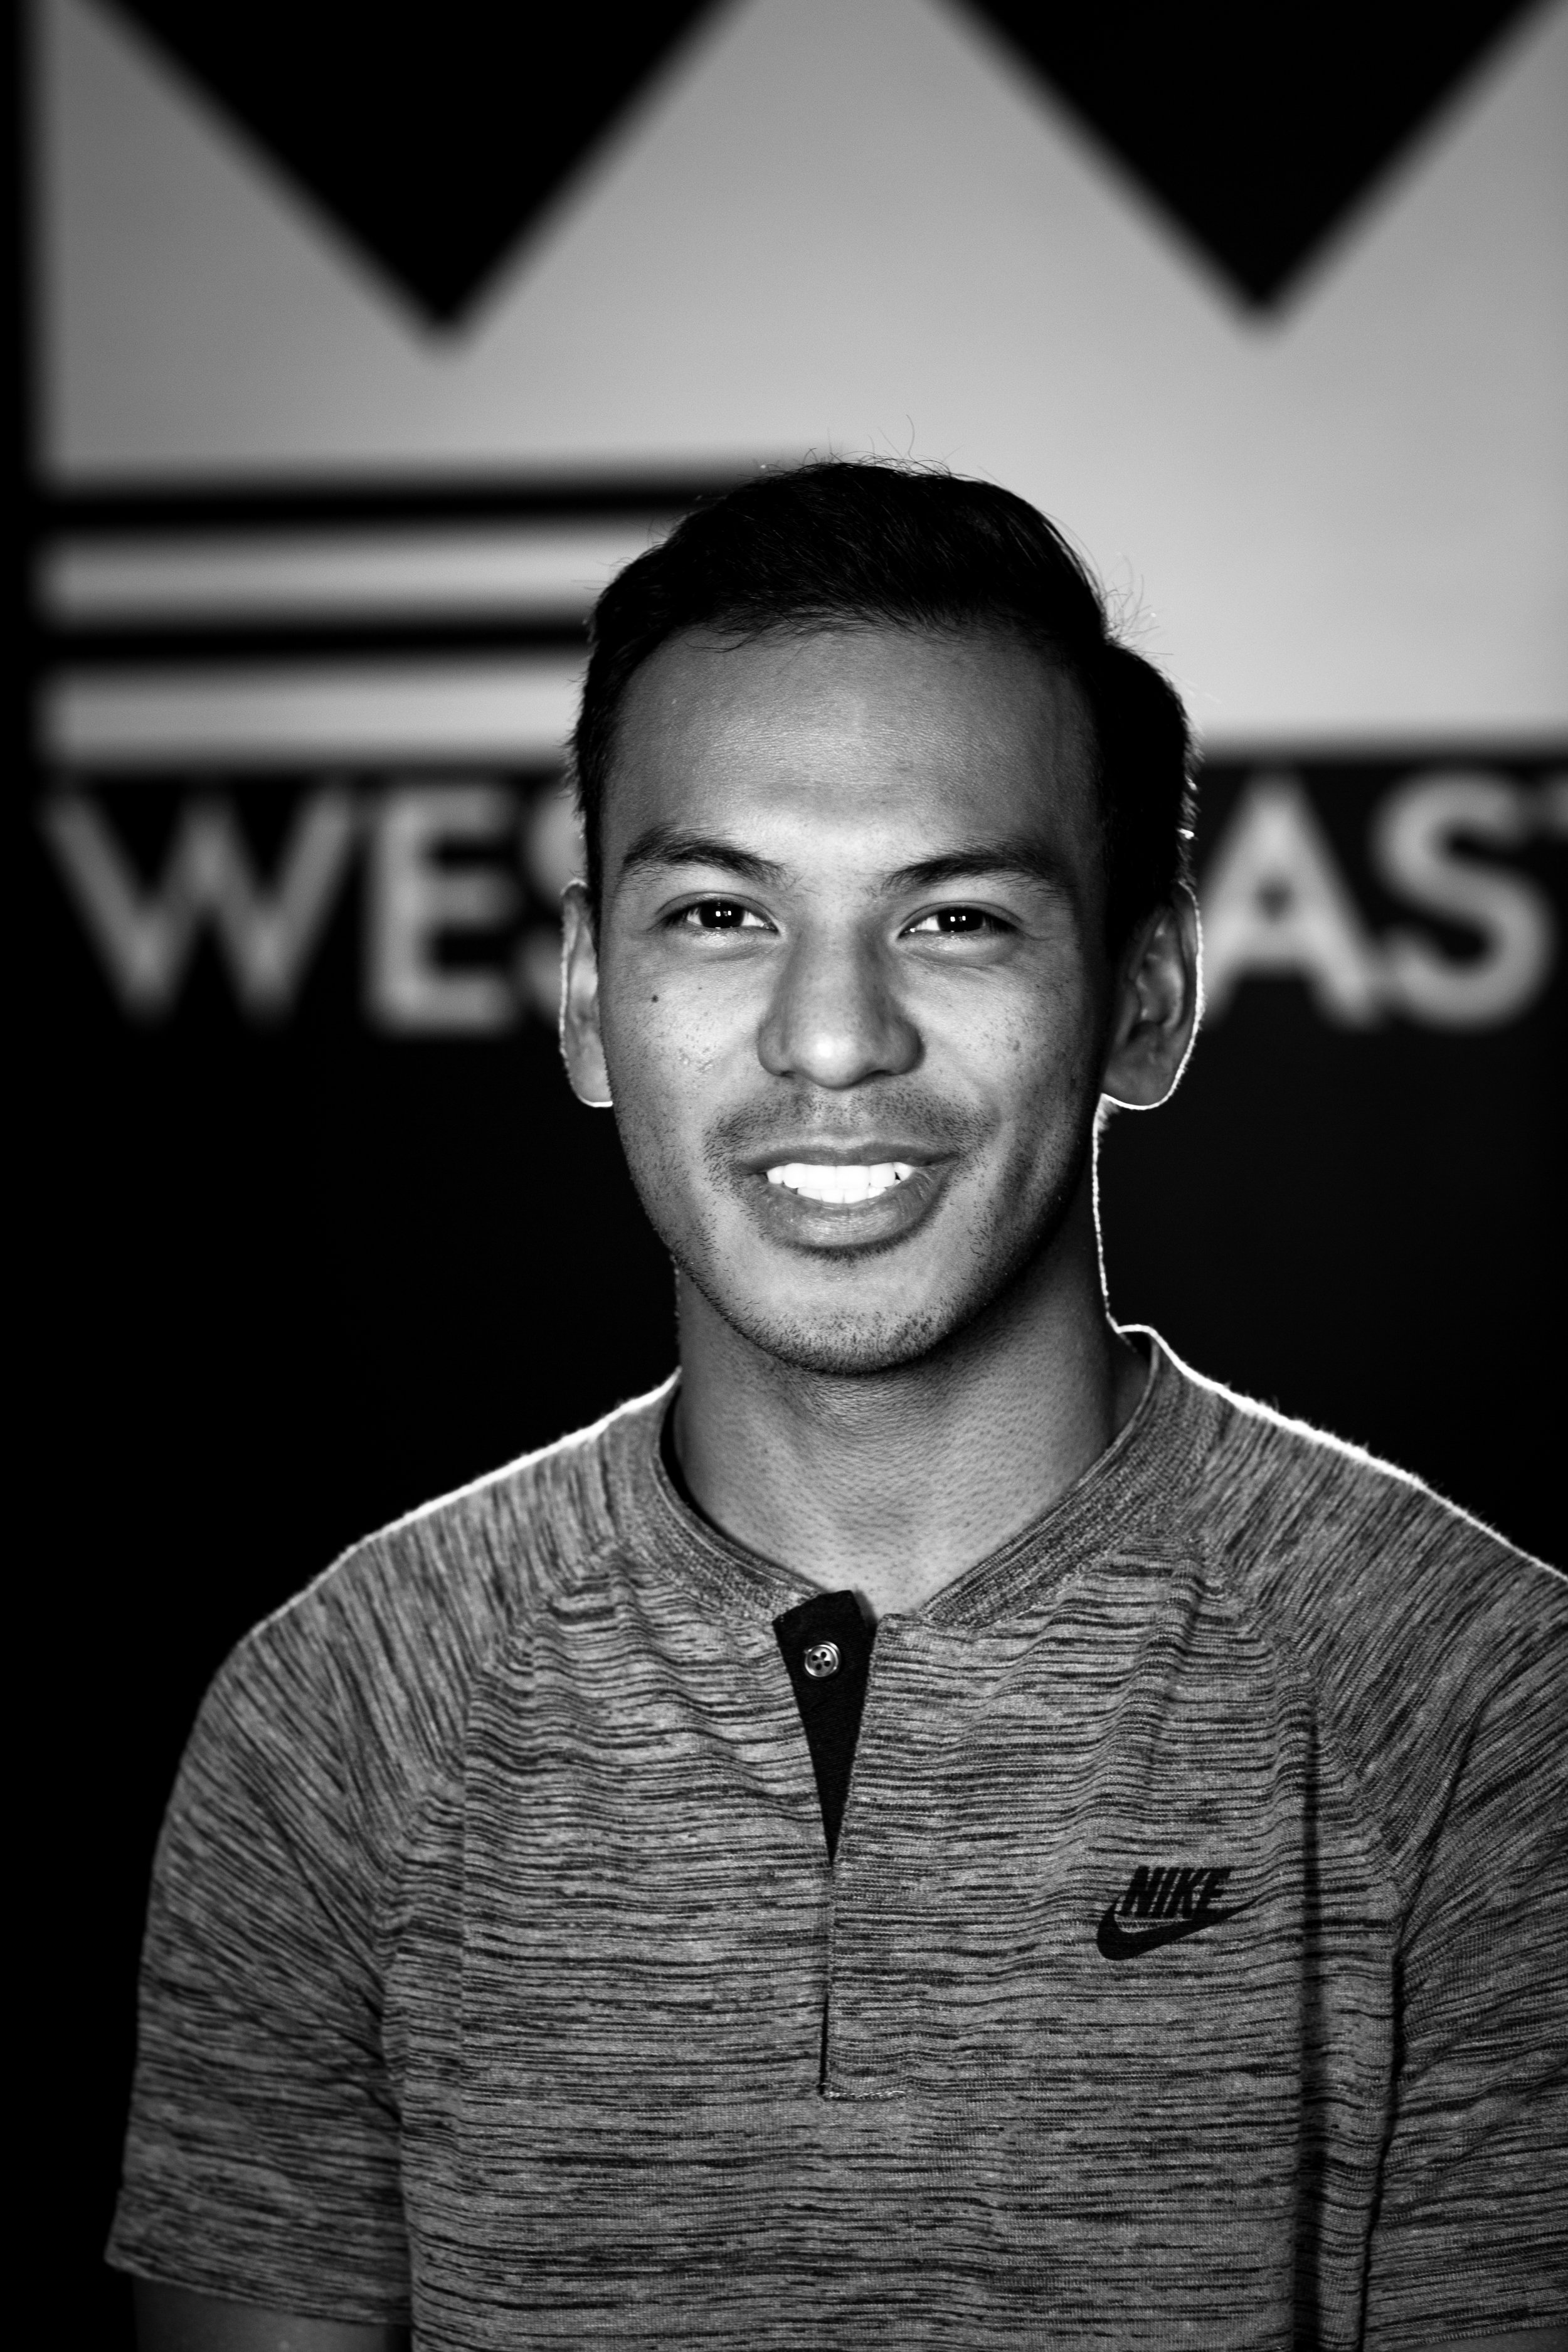 """Los Angeles native, Adam joined the team as West2East Empire's Photographer and Media Assistant.  He spent the 2016 NFL season as social media Producer/Editor for the NBC Sports Sunday Night Football bus and was voted Ai Orange County's """"Best in Show"""" in the Fall 2014 Graduate Portfolio Show.  He's constantly finding ways to inspire others through the creative process, and is a fan and expert of all aspects media - photo, video, and design."""